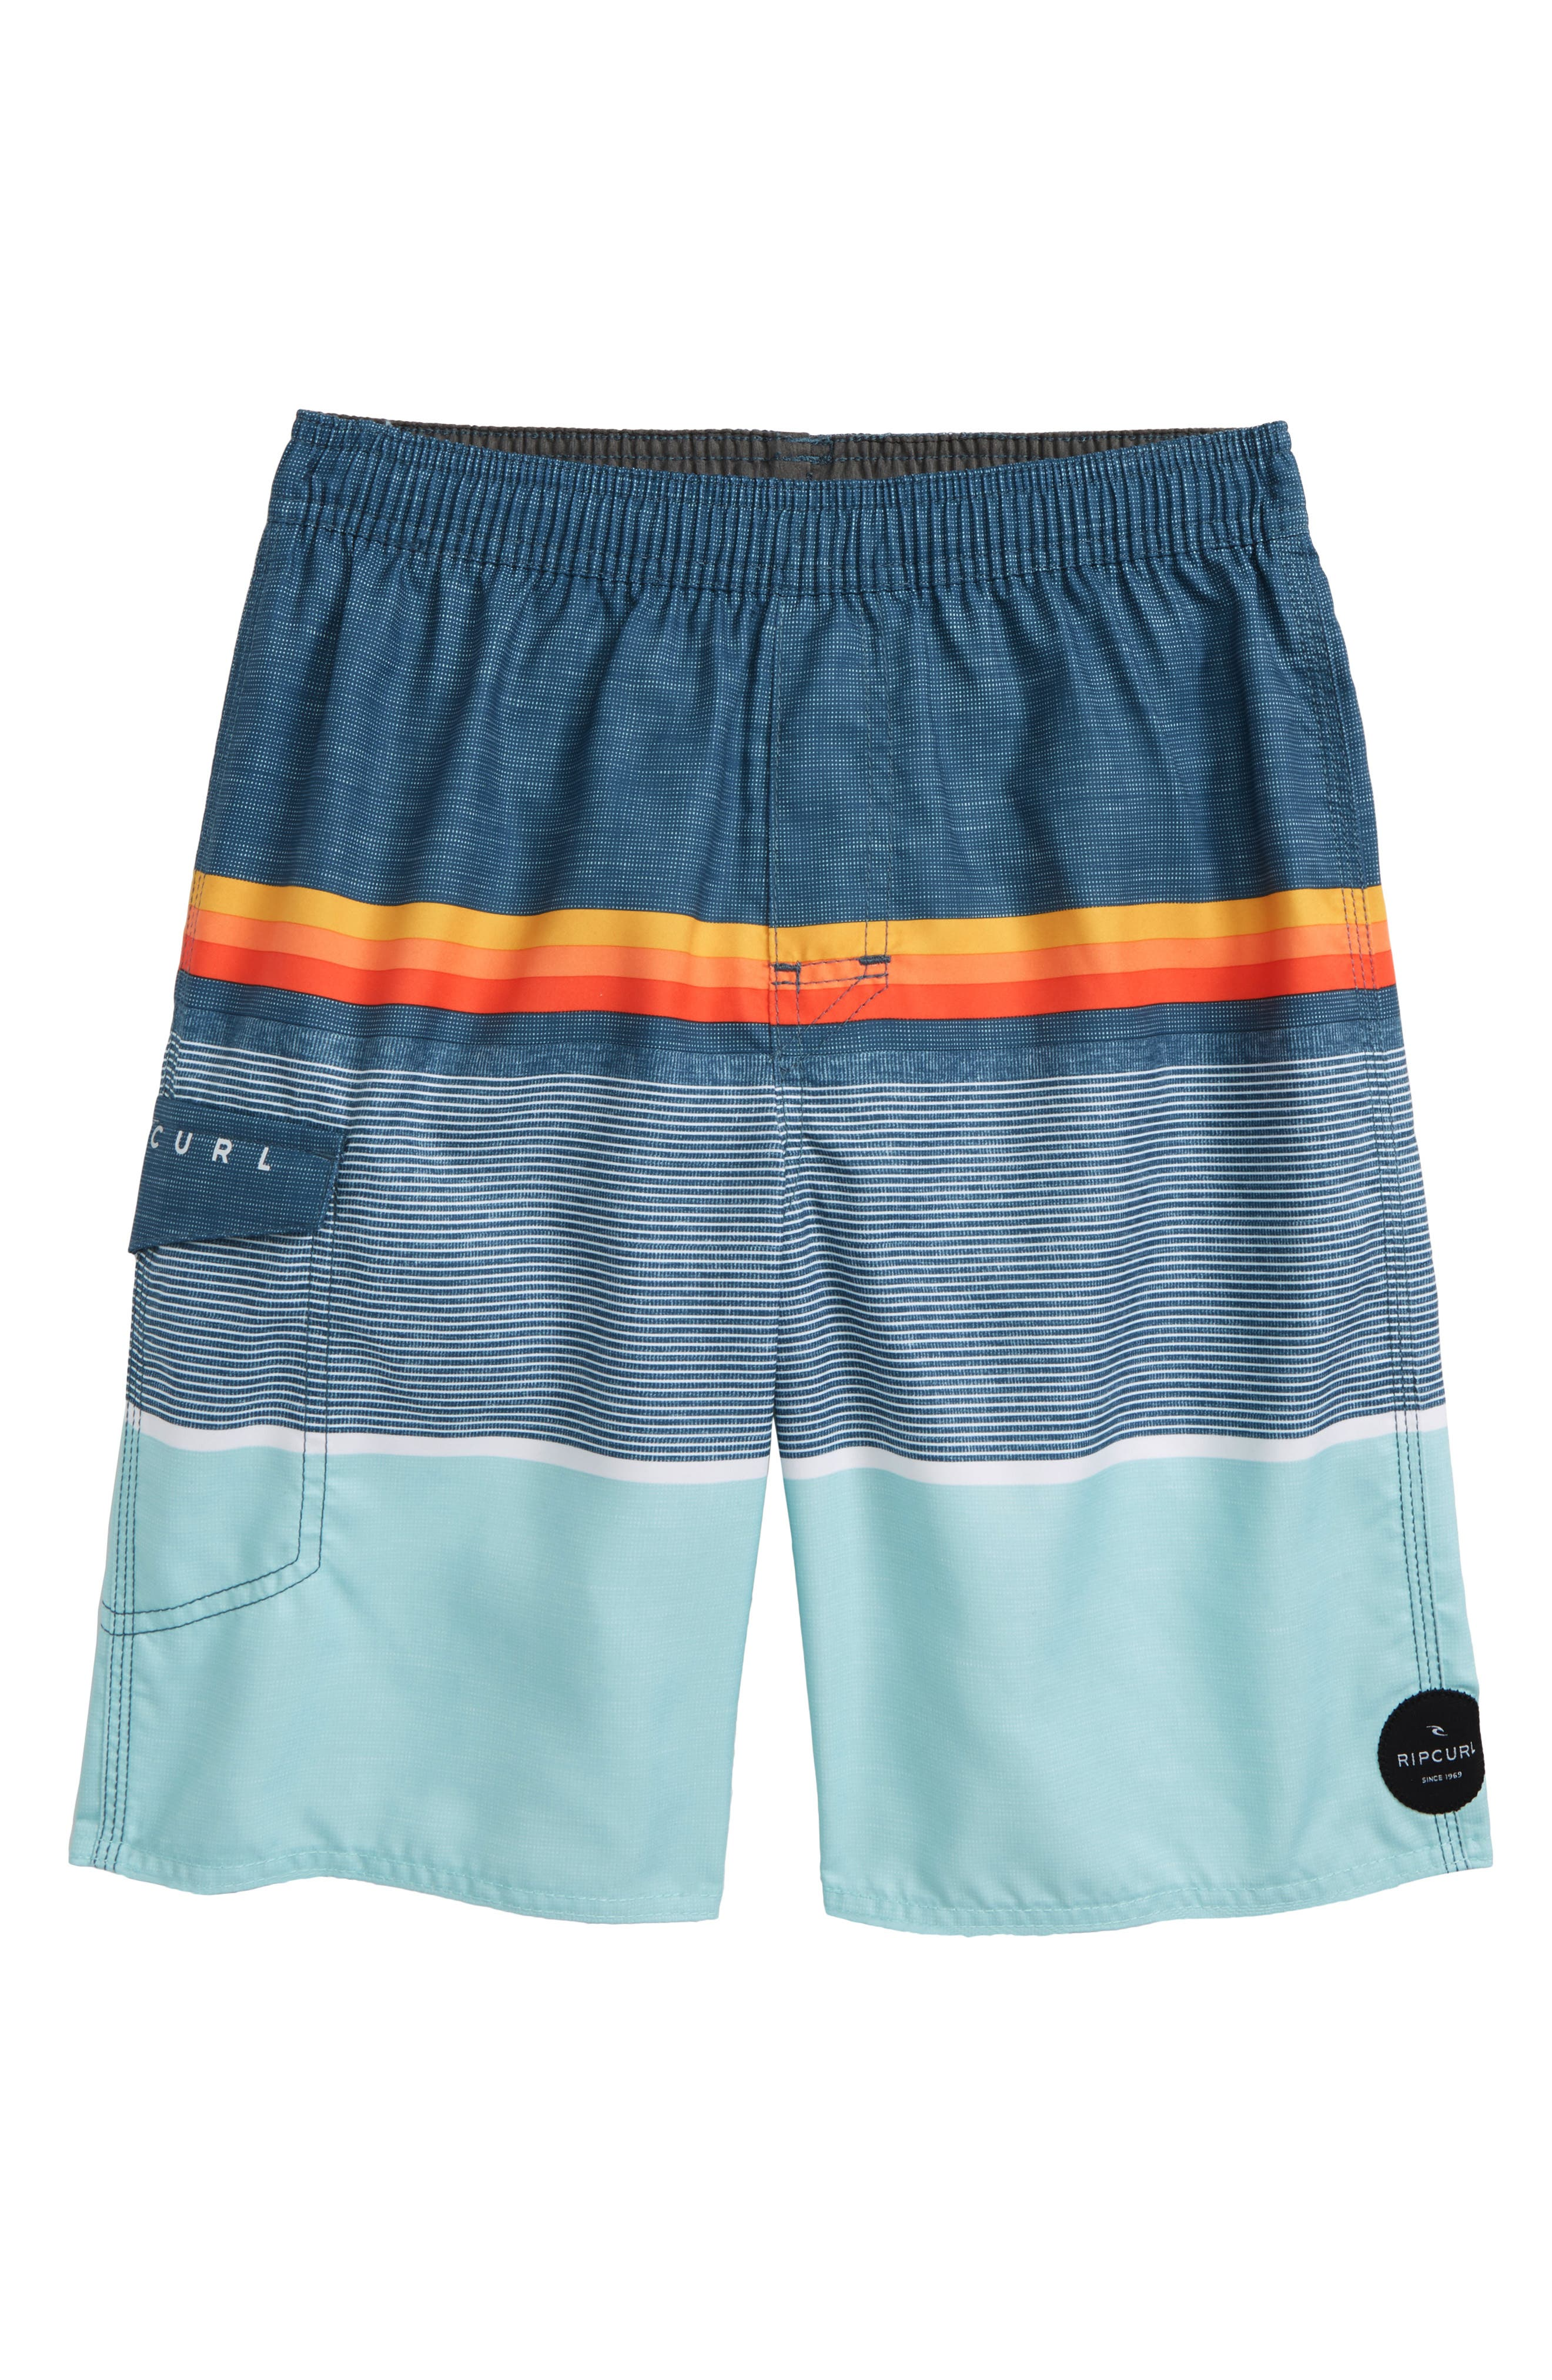 Rapture Volley Shorts,                         Main,                         color, Blue